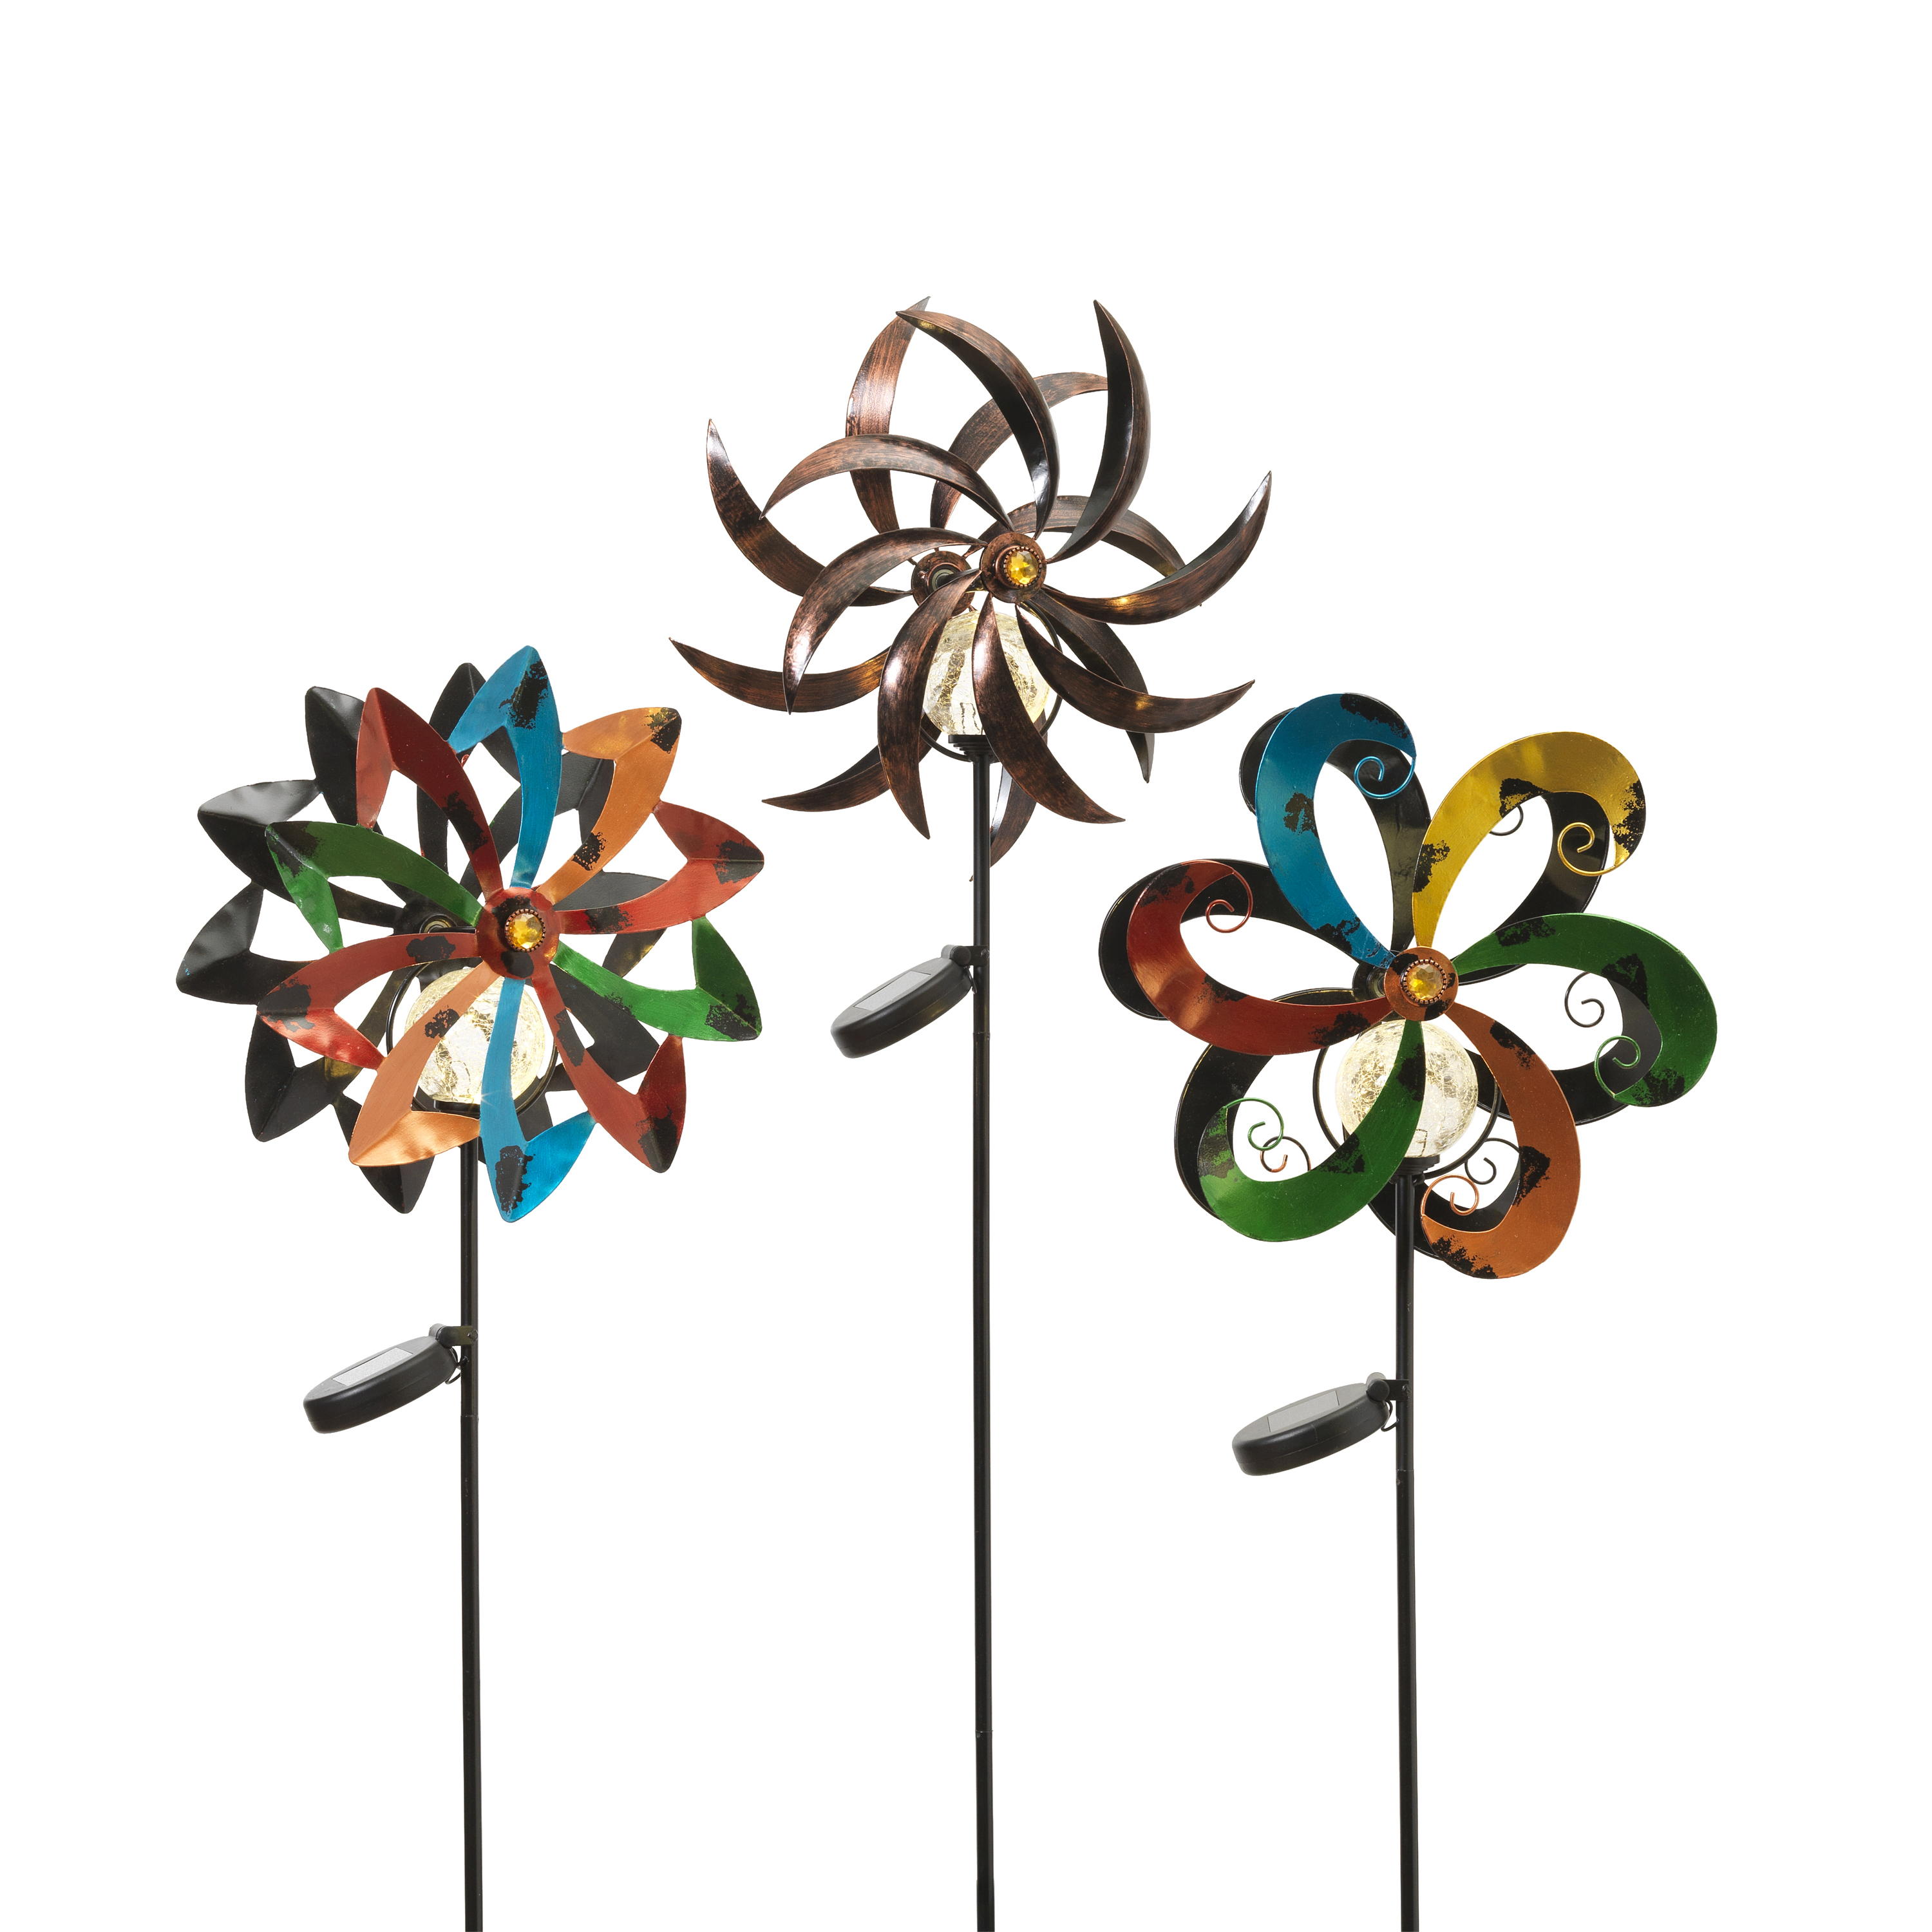 Gerson Assorted 43-Inch Tall Solar-Powered Metal Yard Stakes with Wind Spinners (Set of 3)